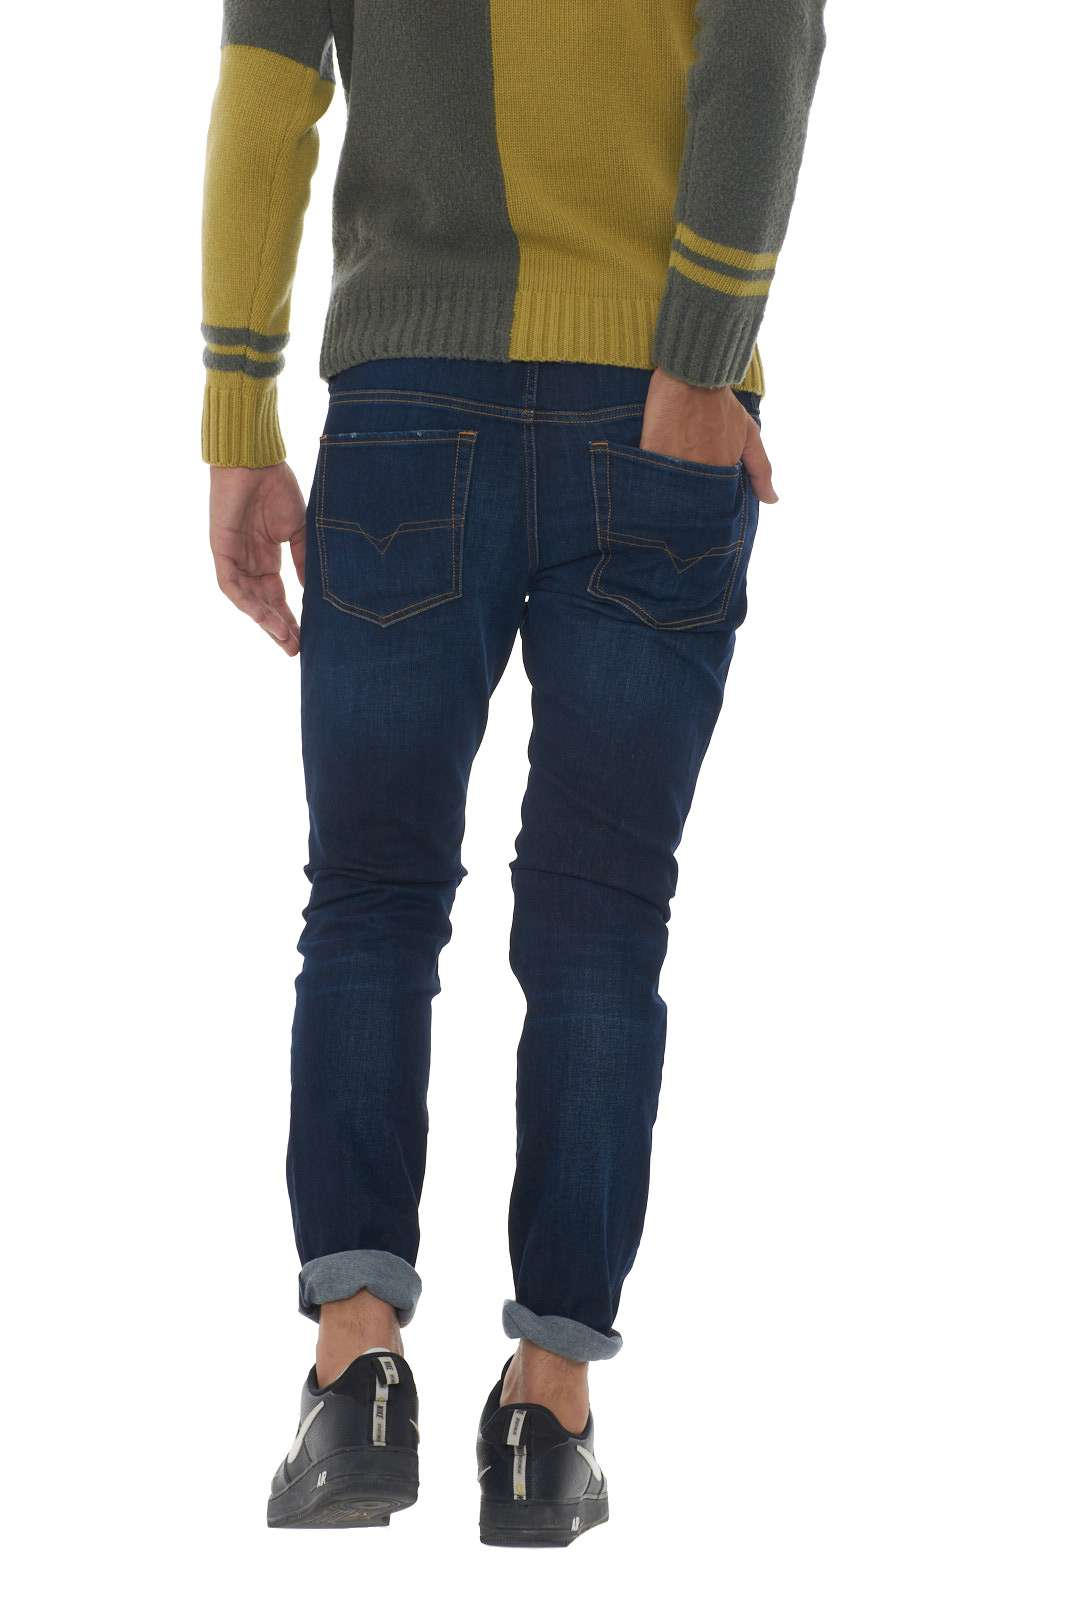 https://www.parmax.com/media/catalog/product/a/i/AI-outlet_parmax-denim-uomo-Diesel-00SWJF%20083AW-C.jpg